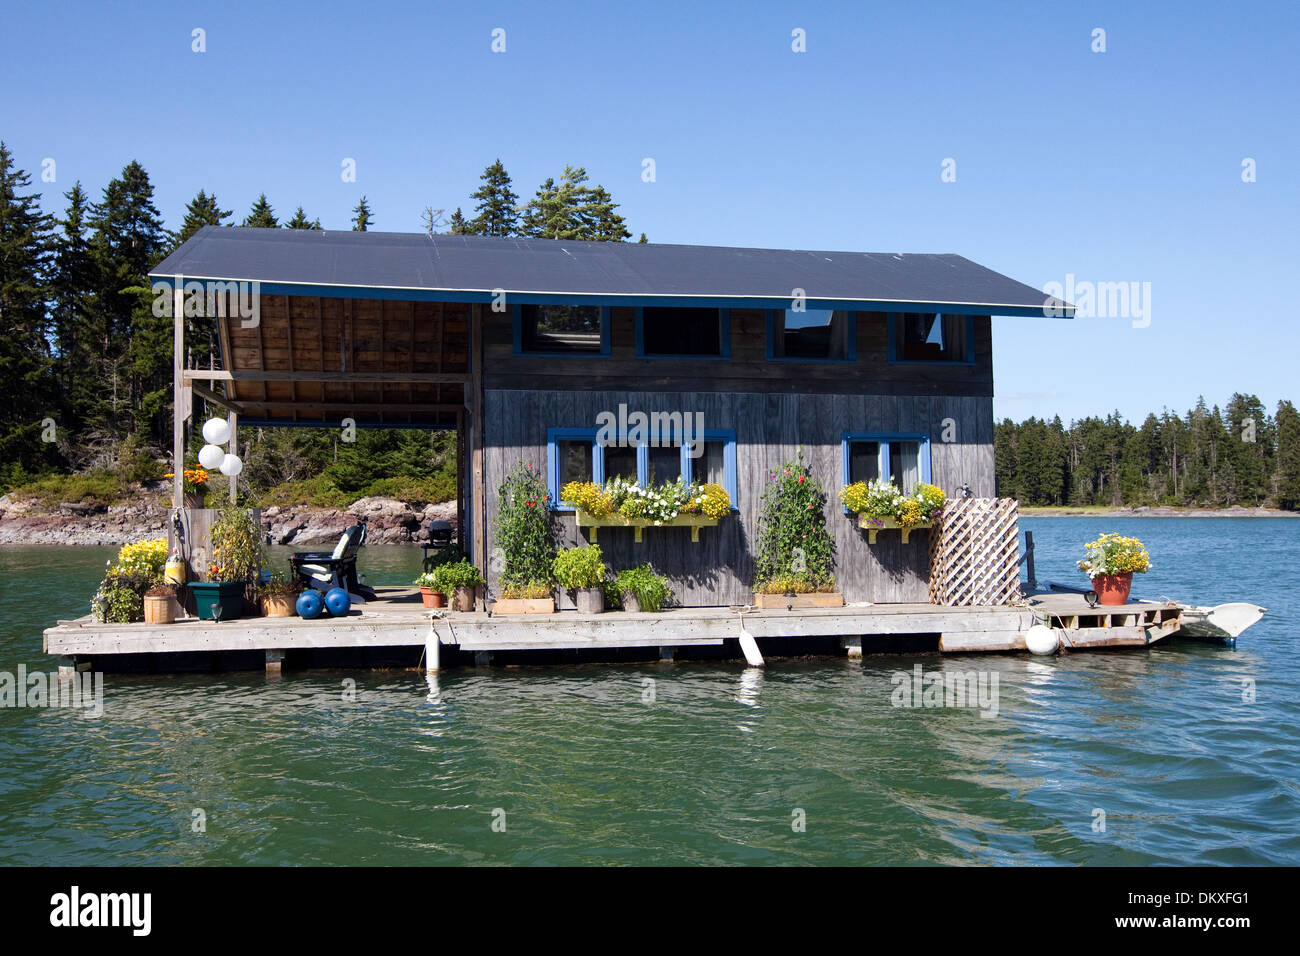 Adorable maison flottante, Perry Creek, Vinalhaven, Maine Photo Stock